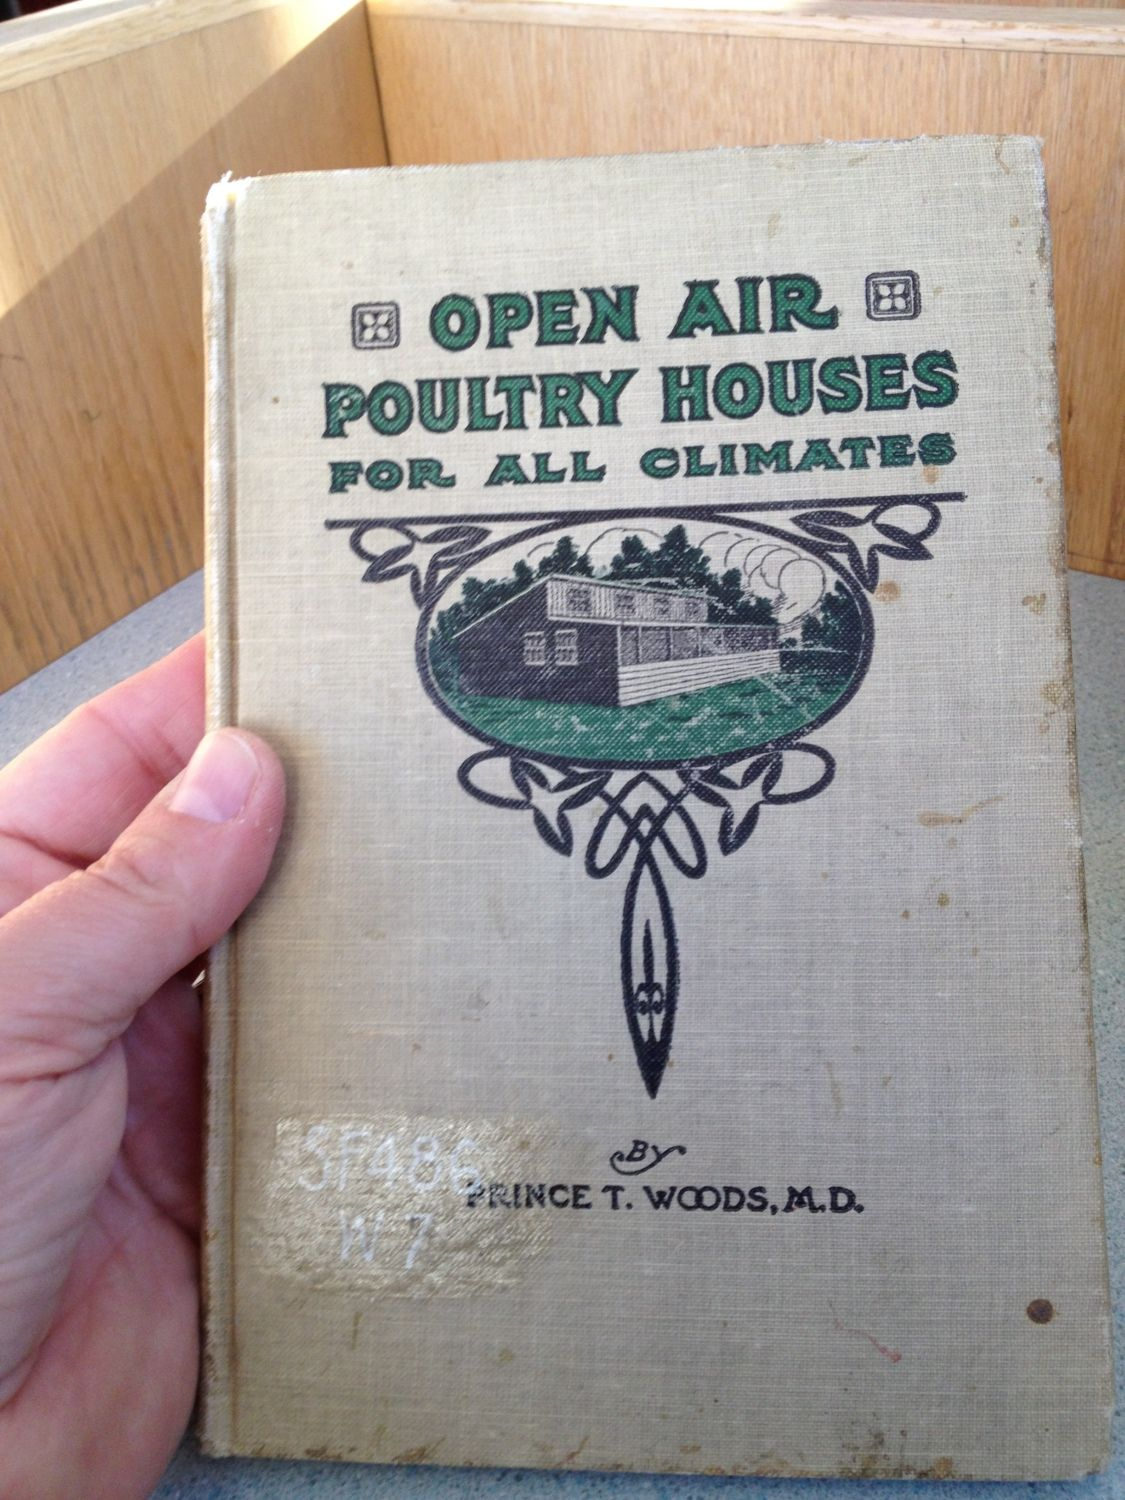 open air poultry houses for all climates book in hand i think